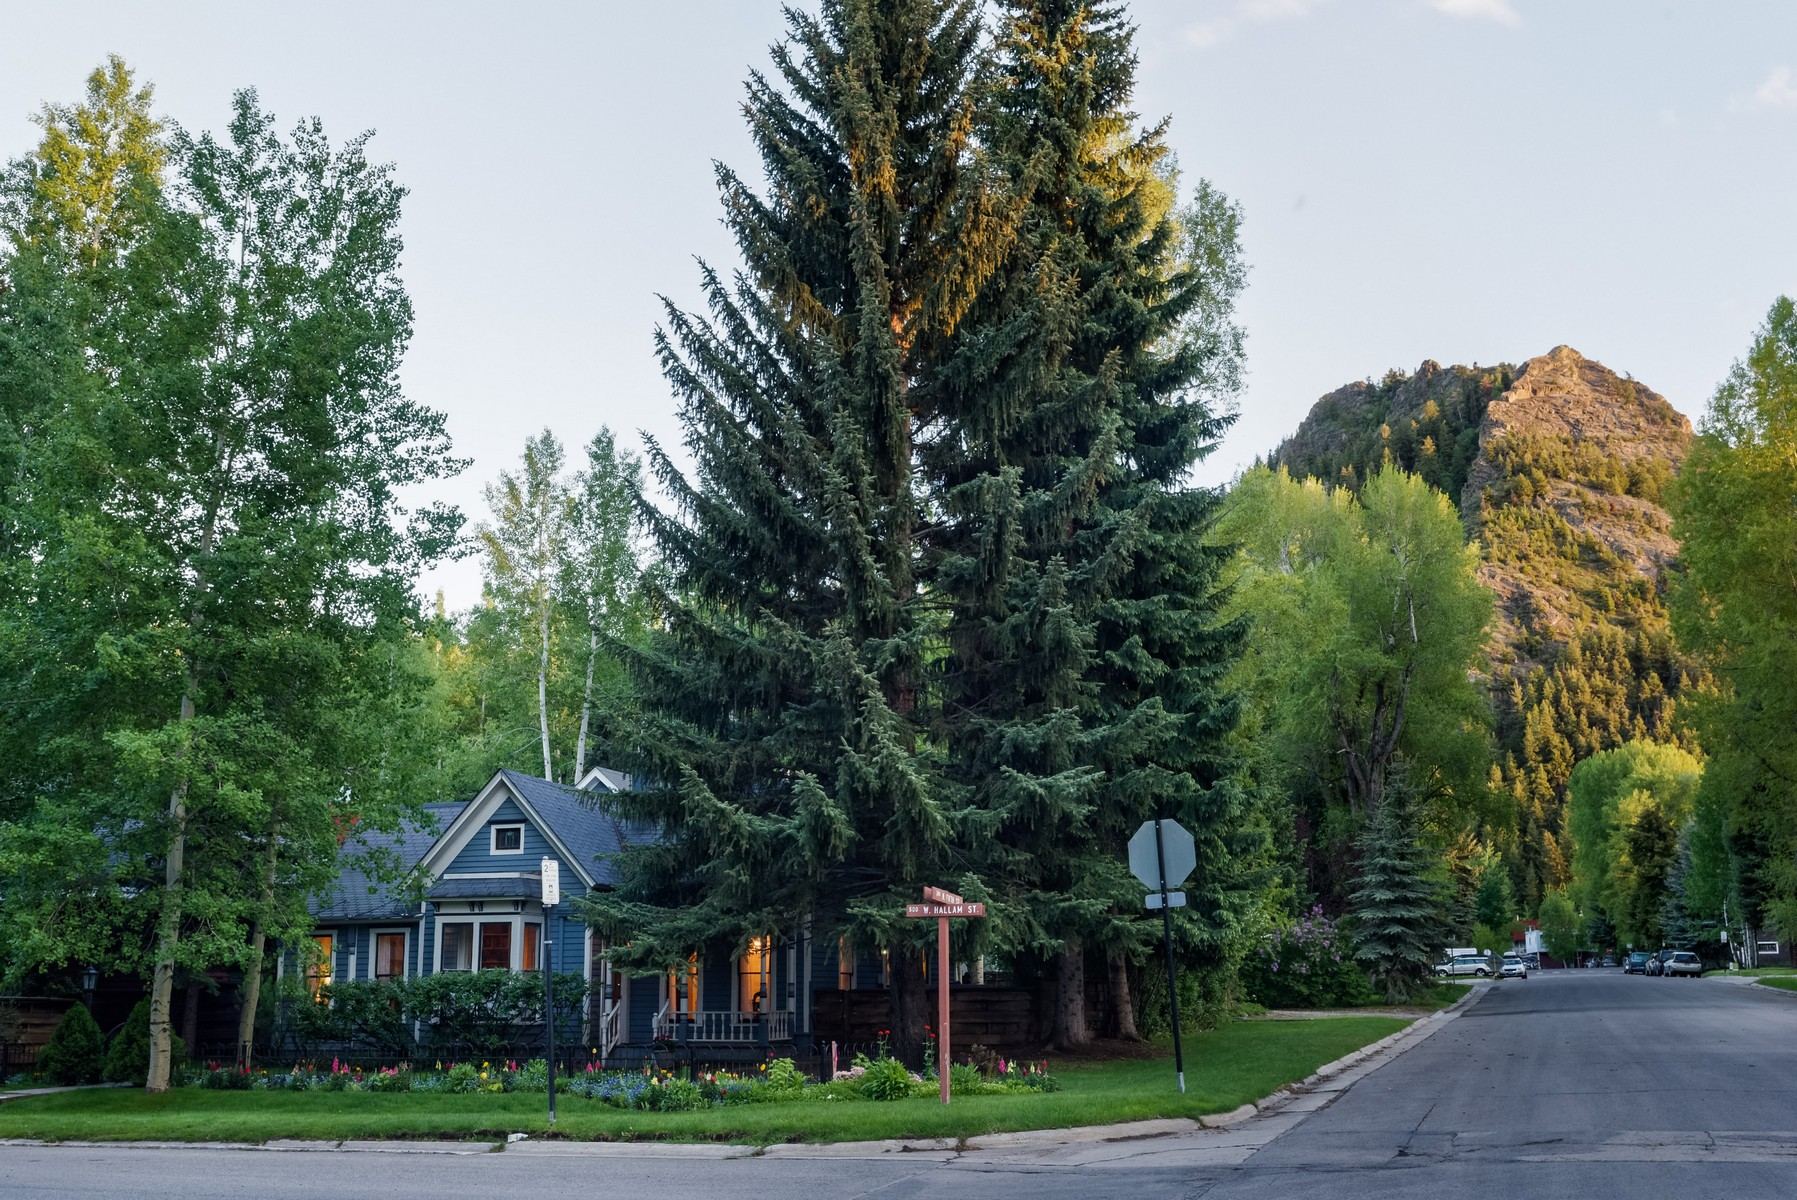 Villa per Vendita alle ore West End Jewel 533 W. Hallam, LLC West End, Aspen, Colorado 81611 Stati Uniti